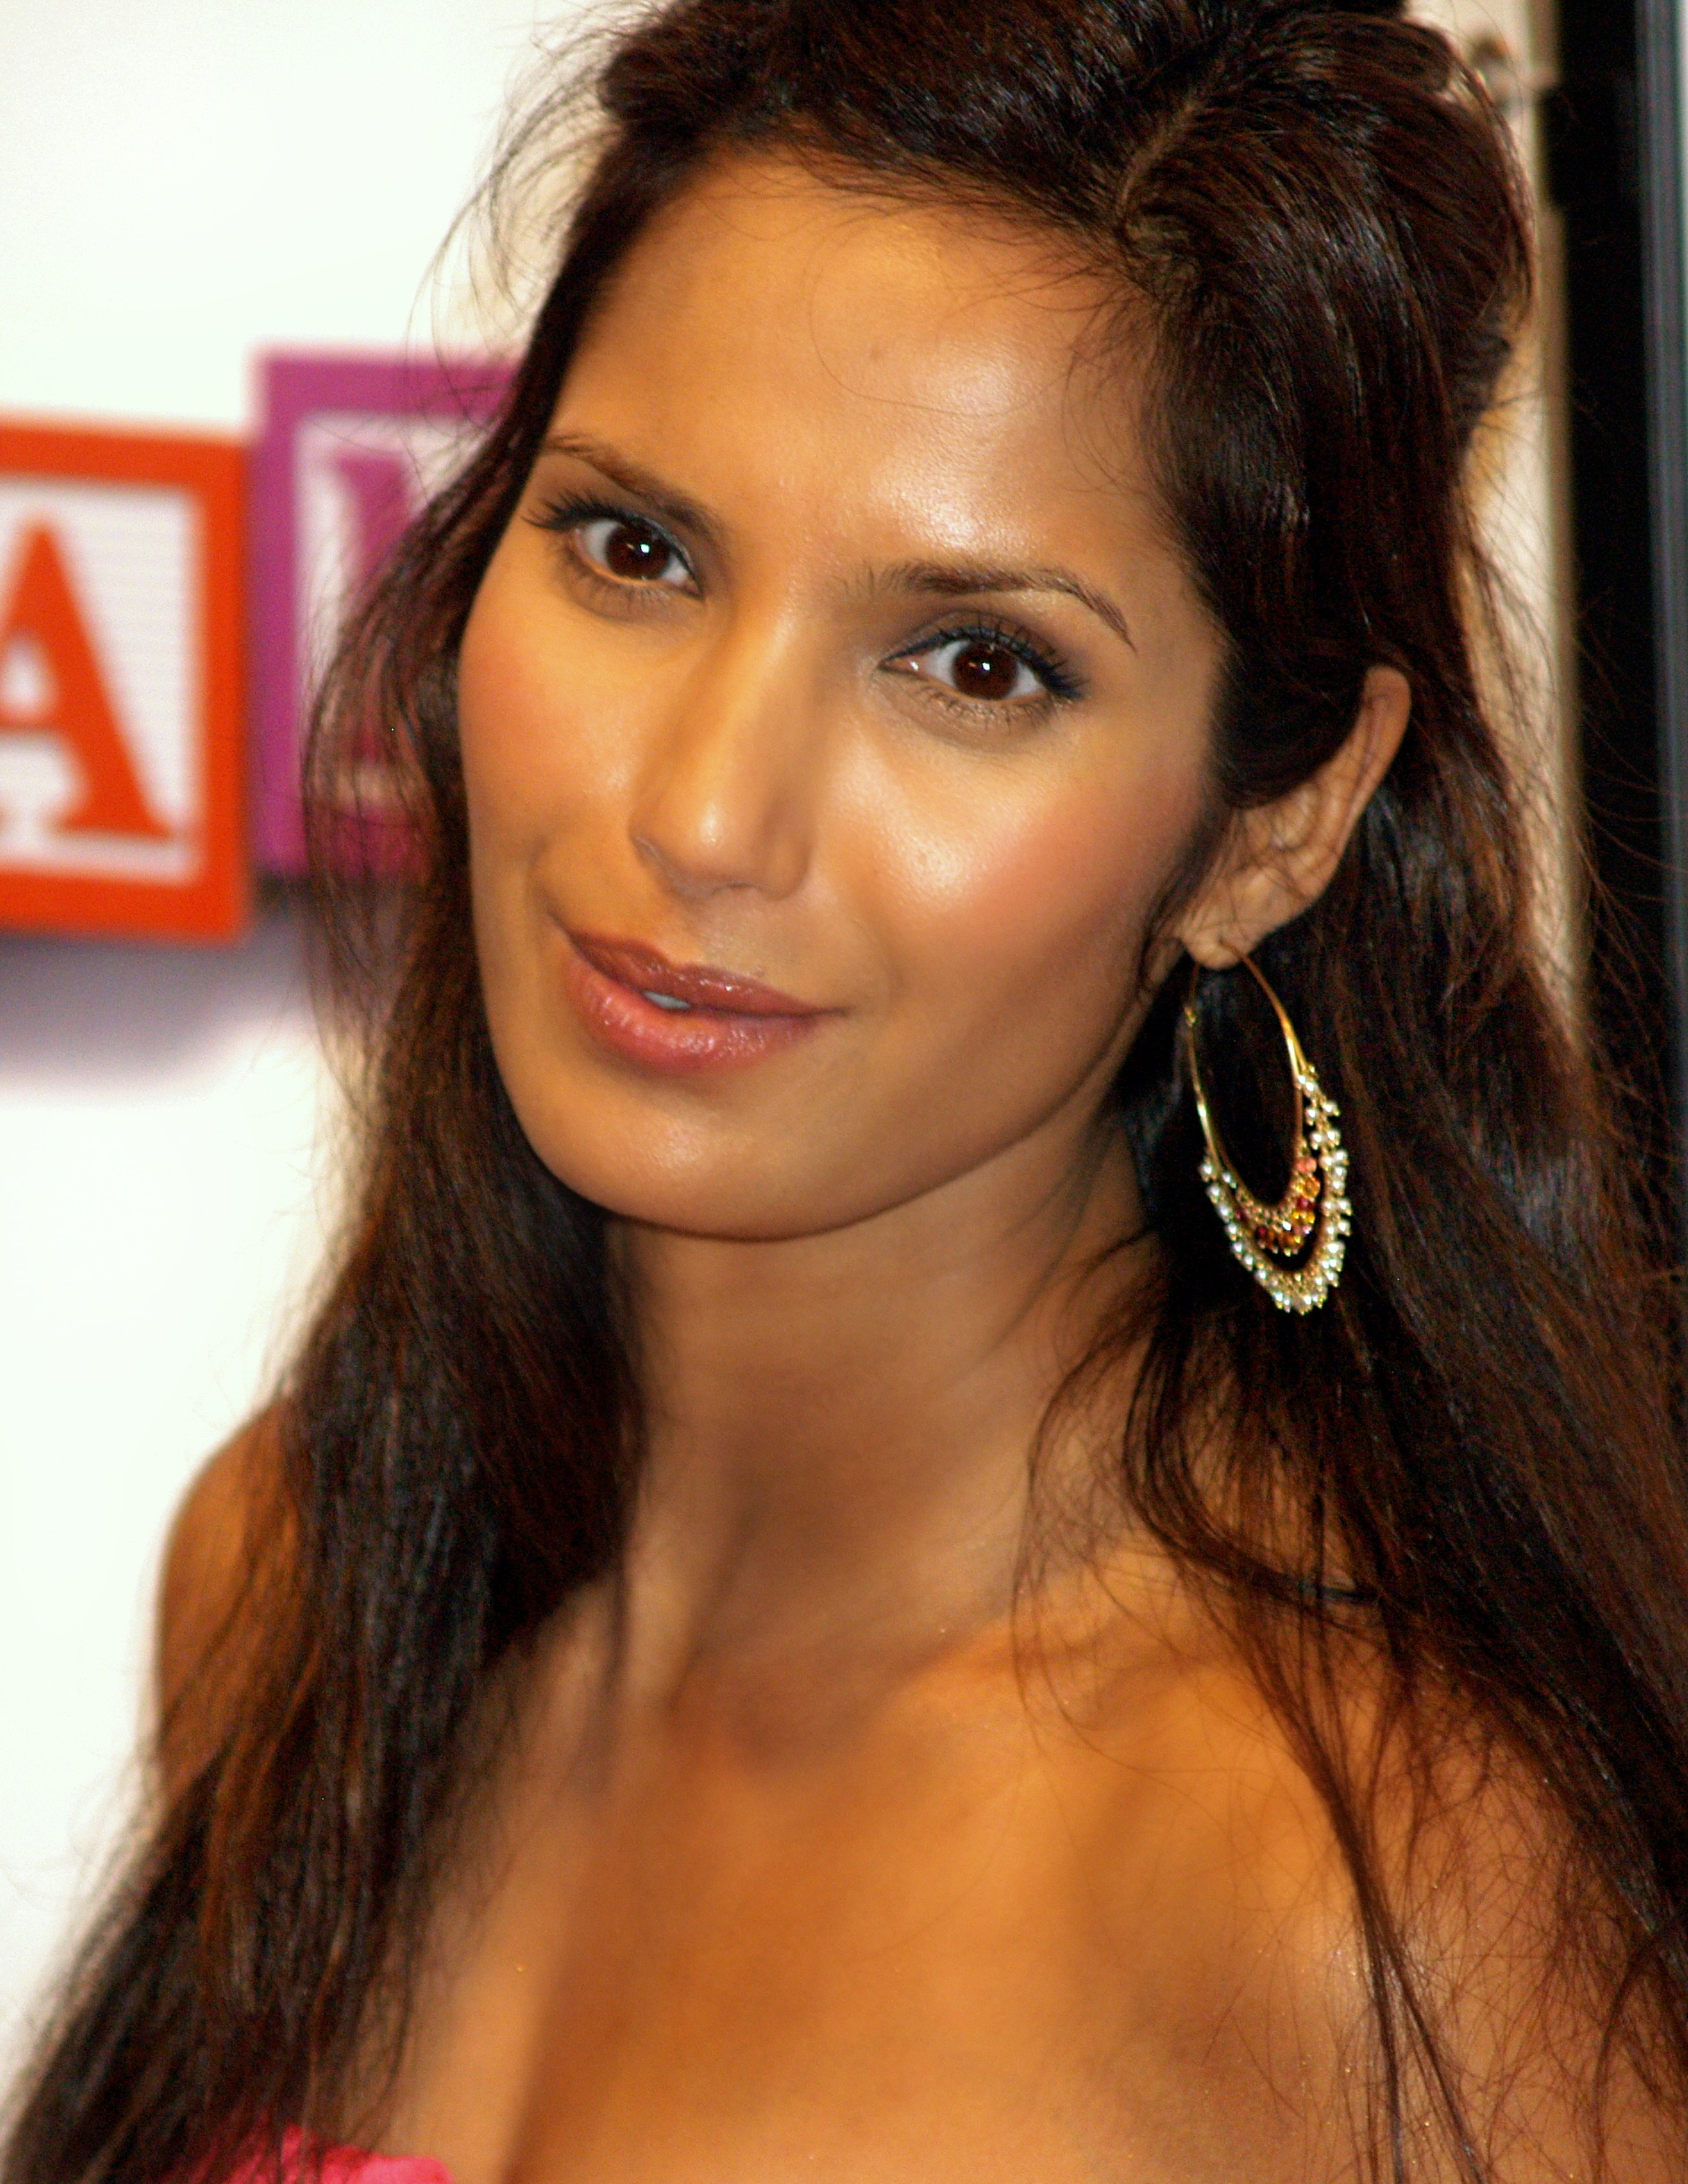 Description padma lakshmi at the 2008 tribeca film festival jpg